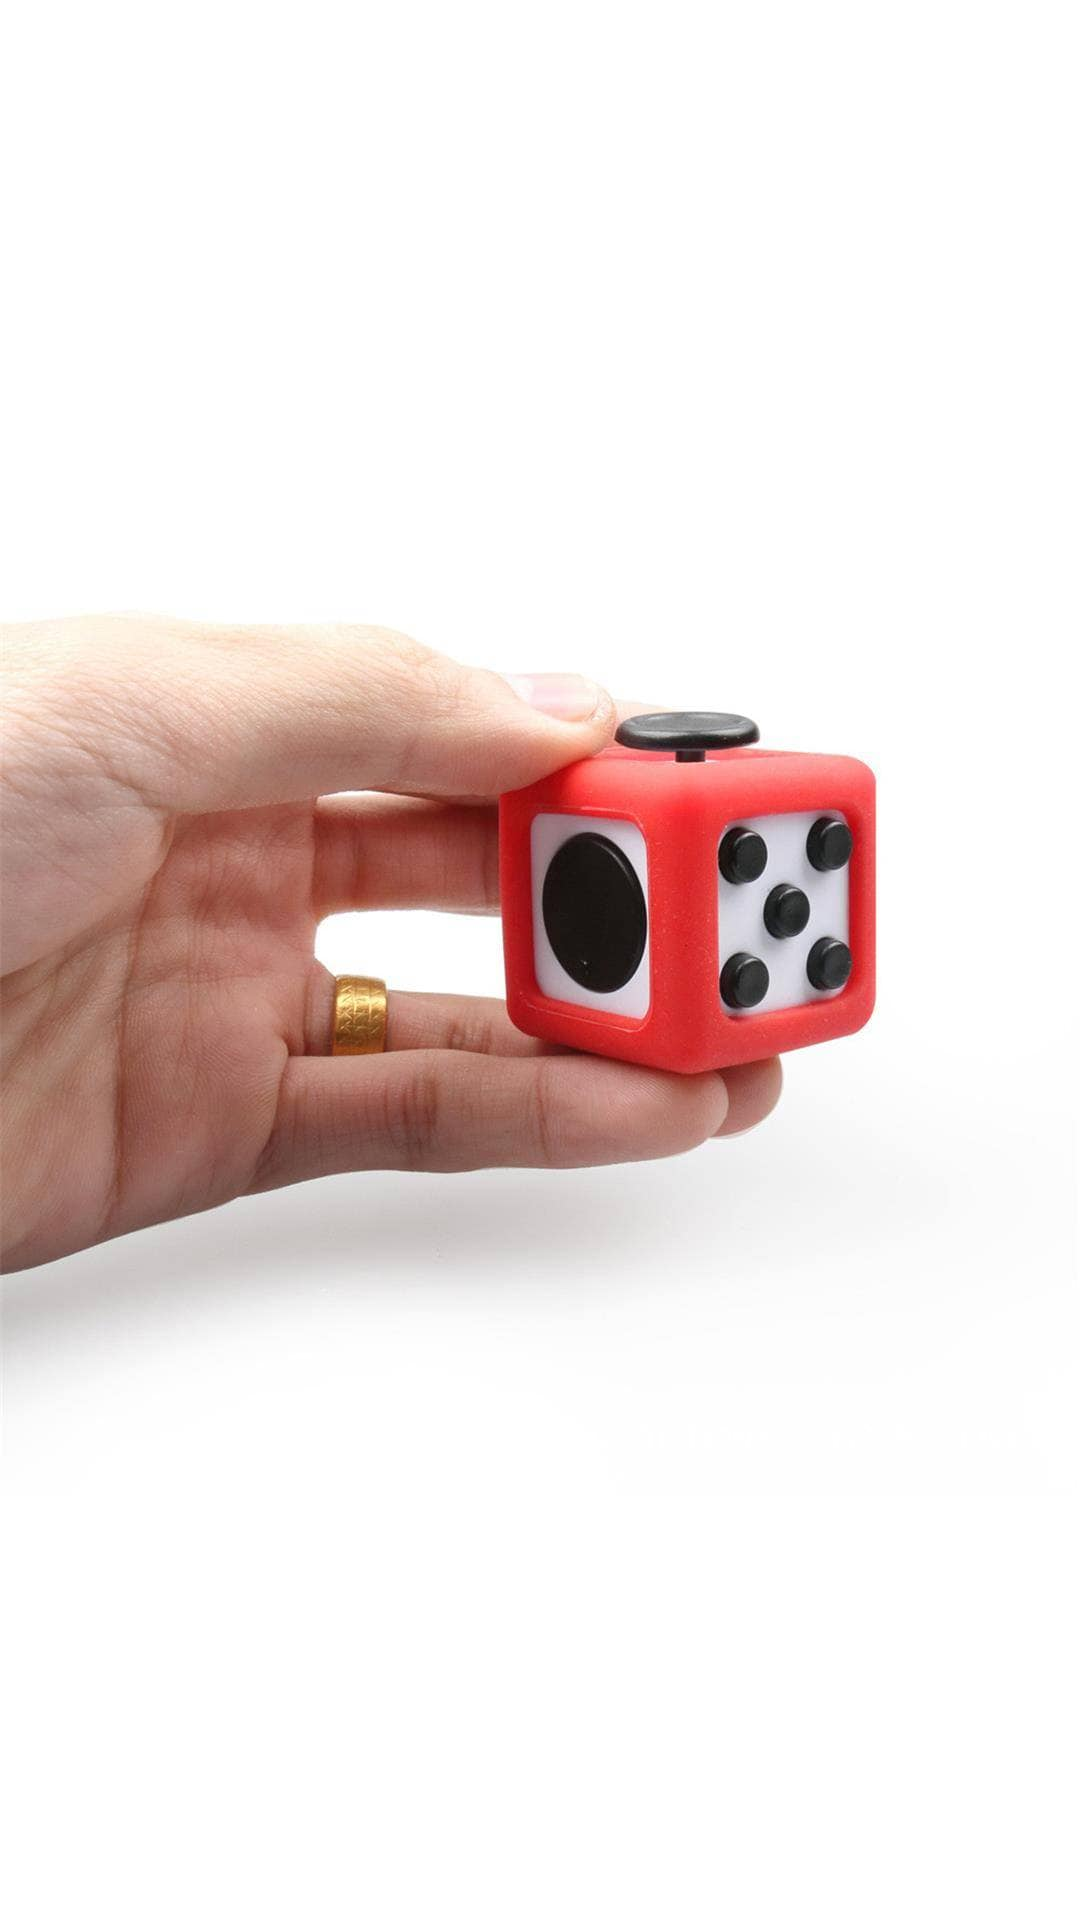 What are Fidget Spinners? How do to they work? Buy one today on Paytm for Rs.49 - Buy For Fidget Cube Stress Relief Focus Toy Protective Cover Case Paytm Mall Deal